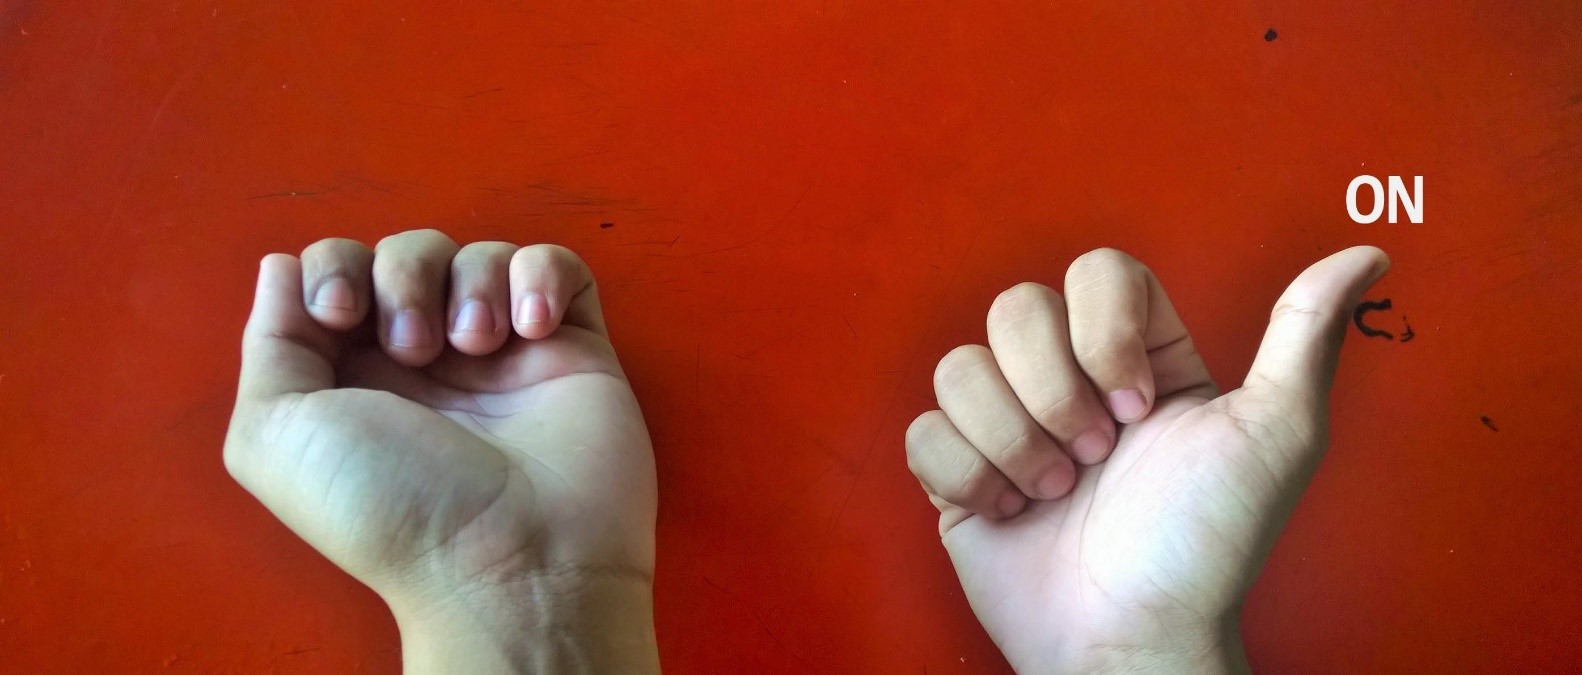 A new way to count with fingers